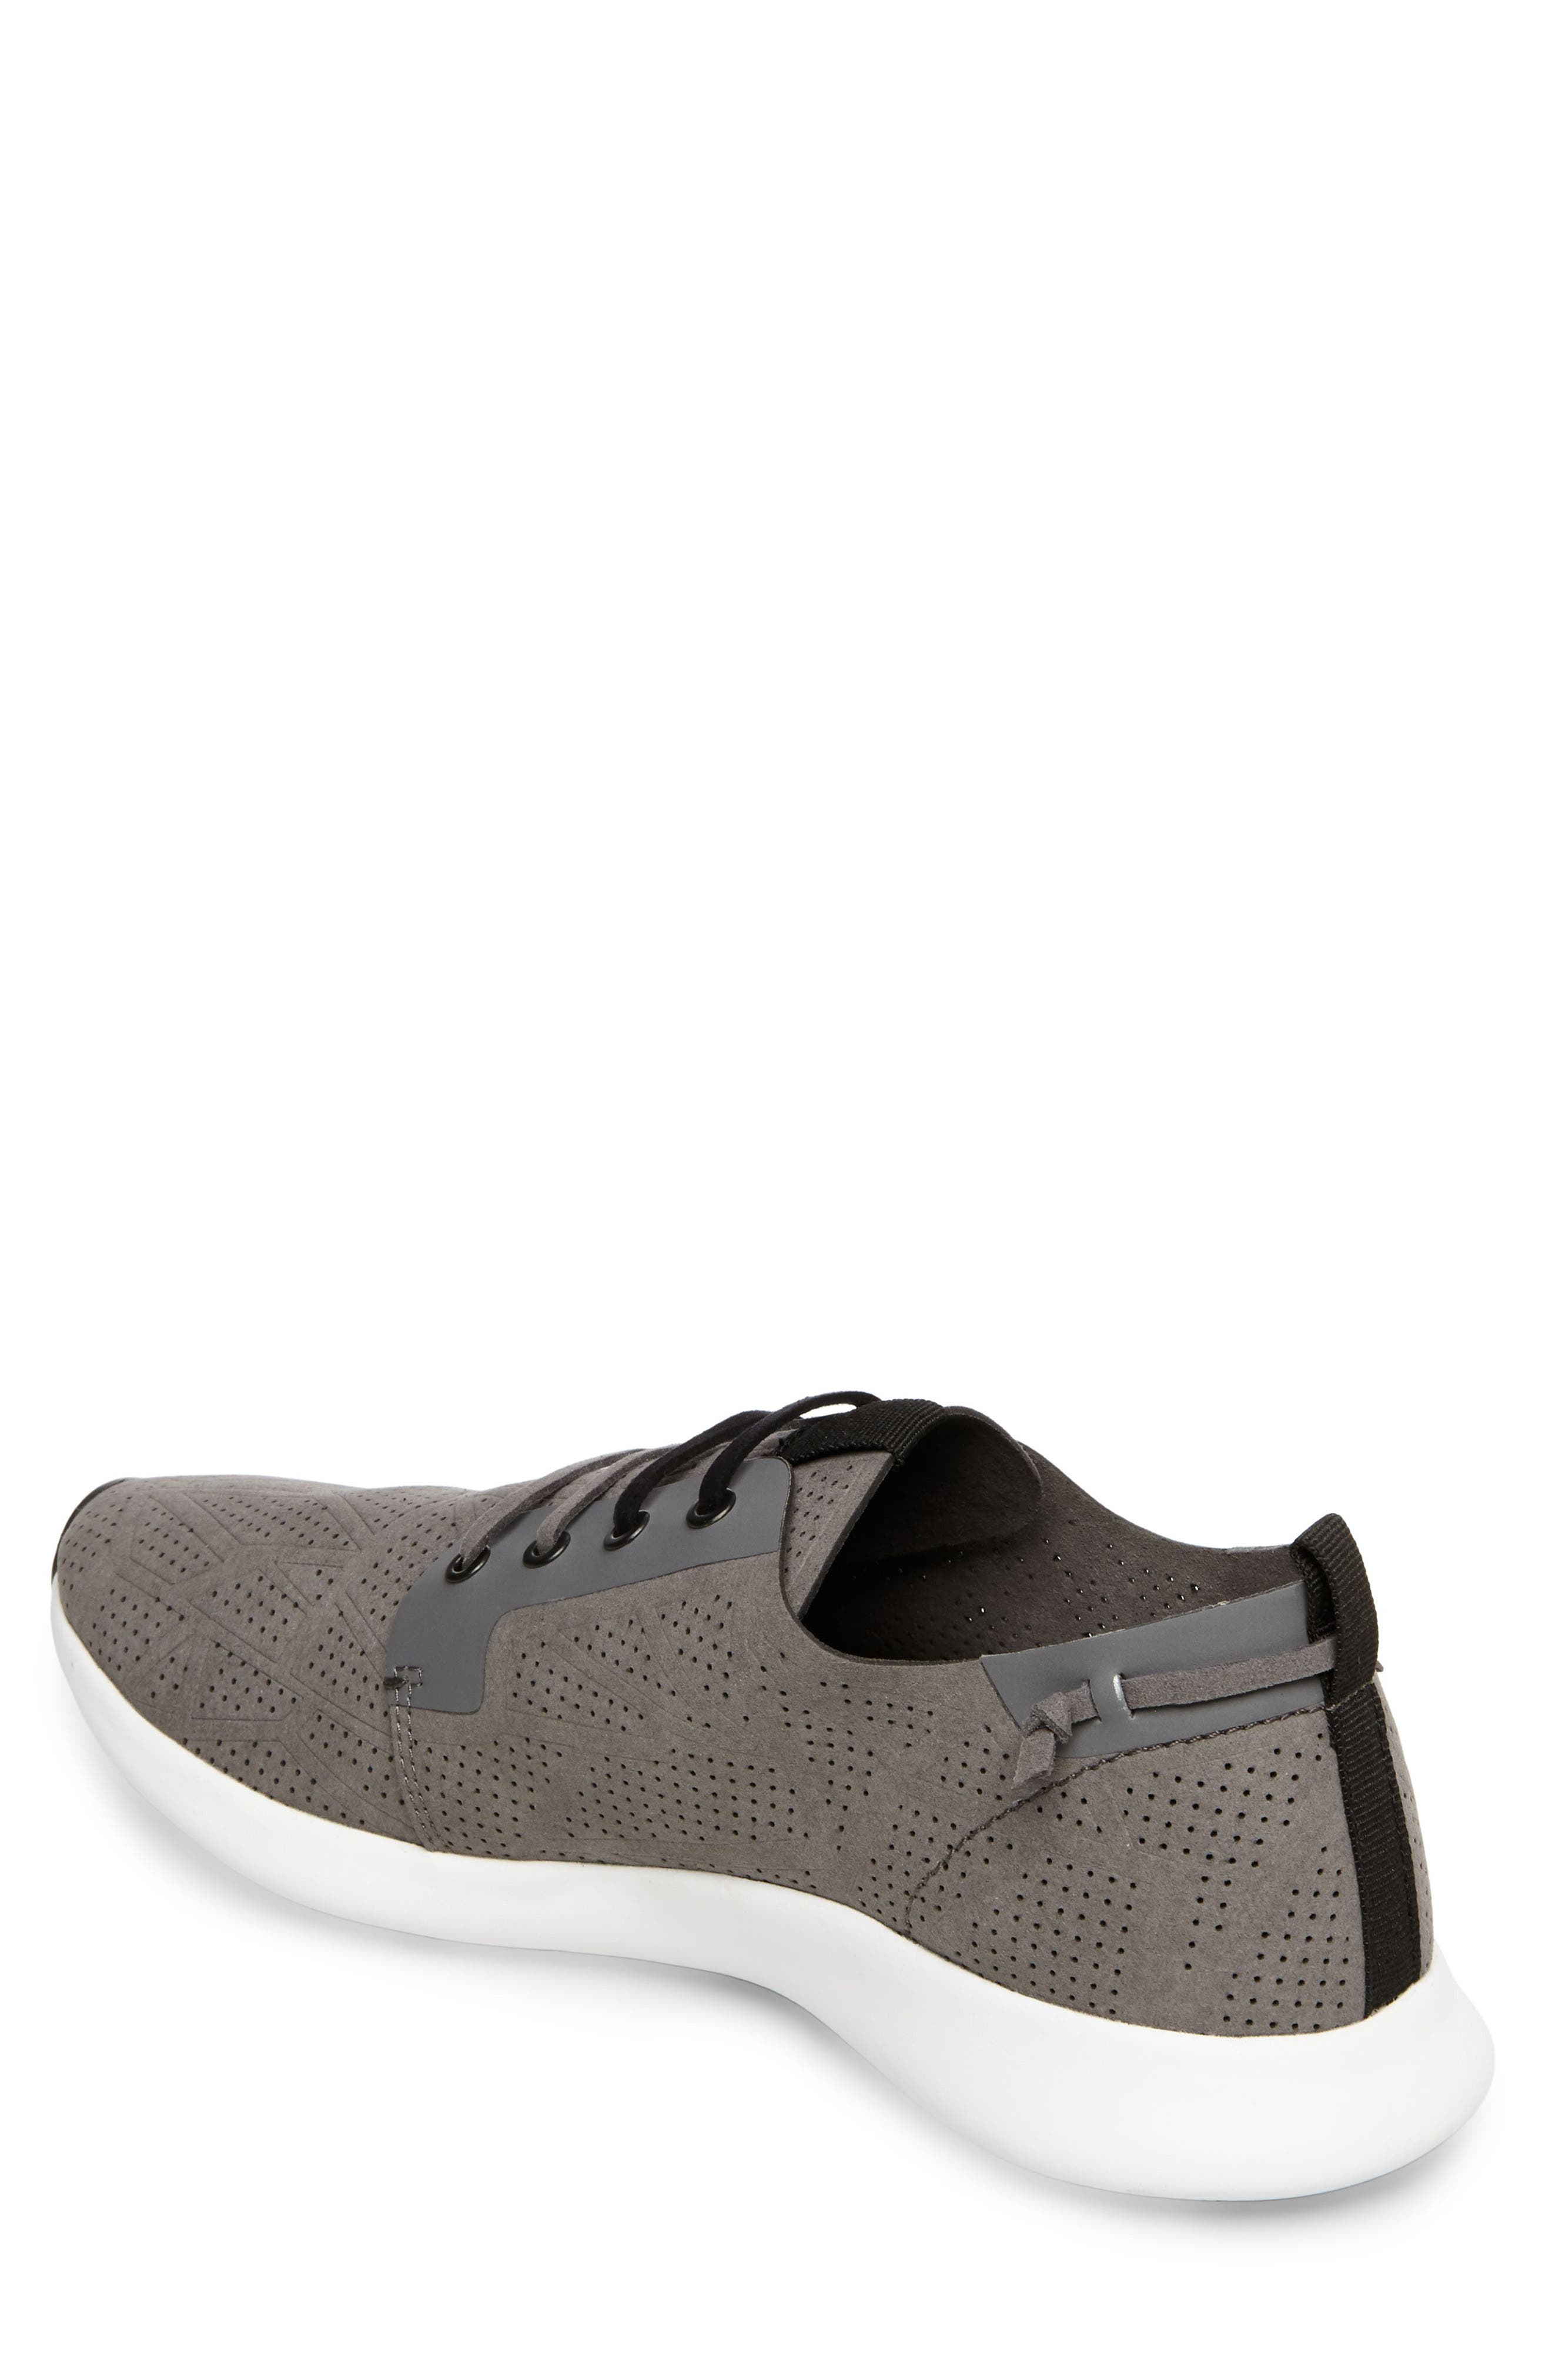 Batali Perforated Sneaker,                             Alternate thumbnail 2, color,                             055